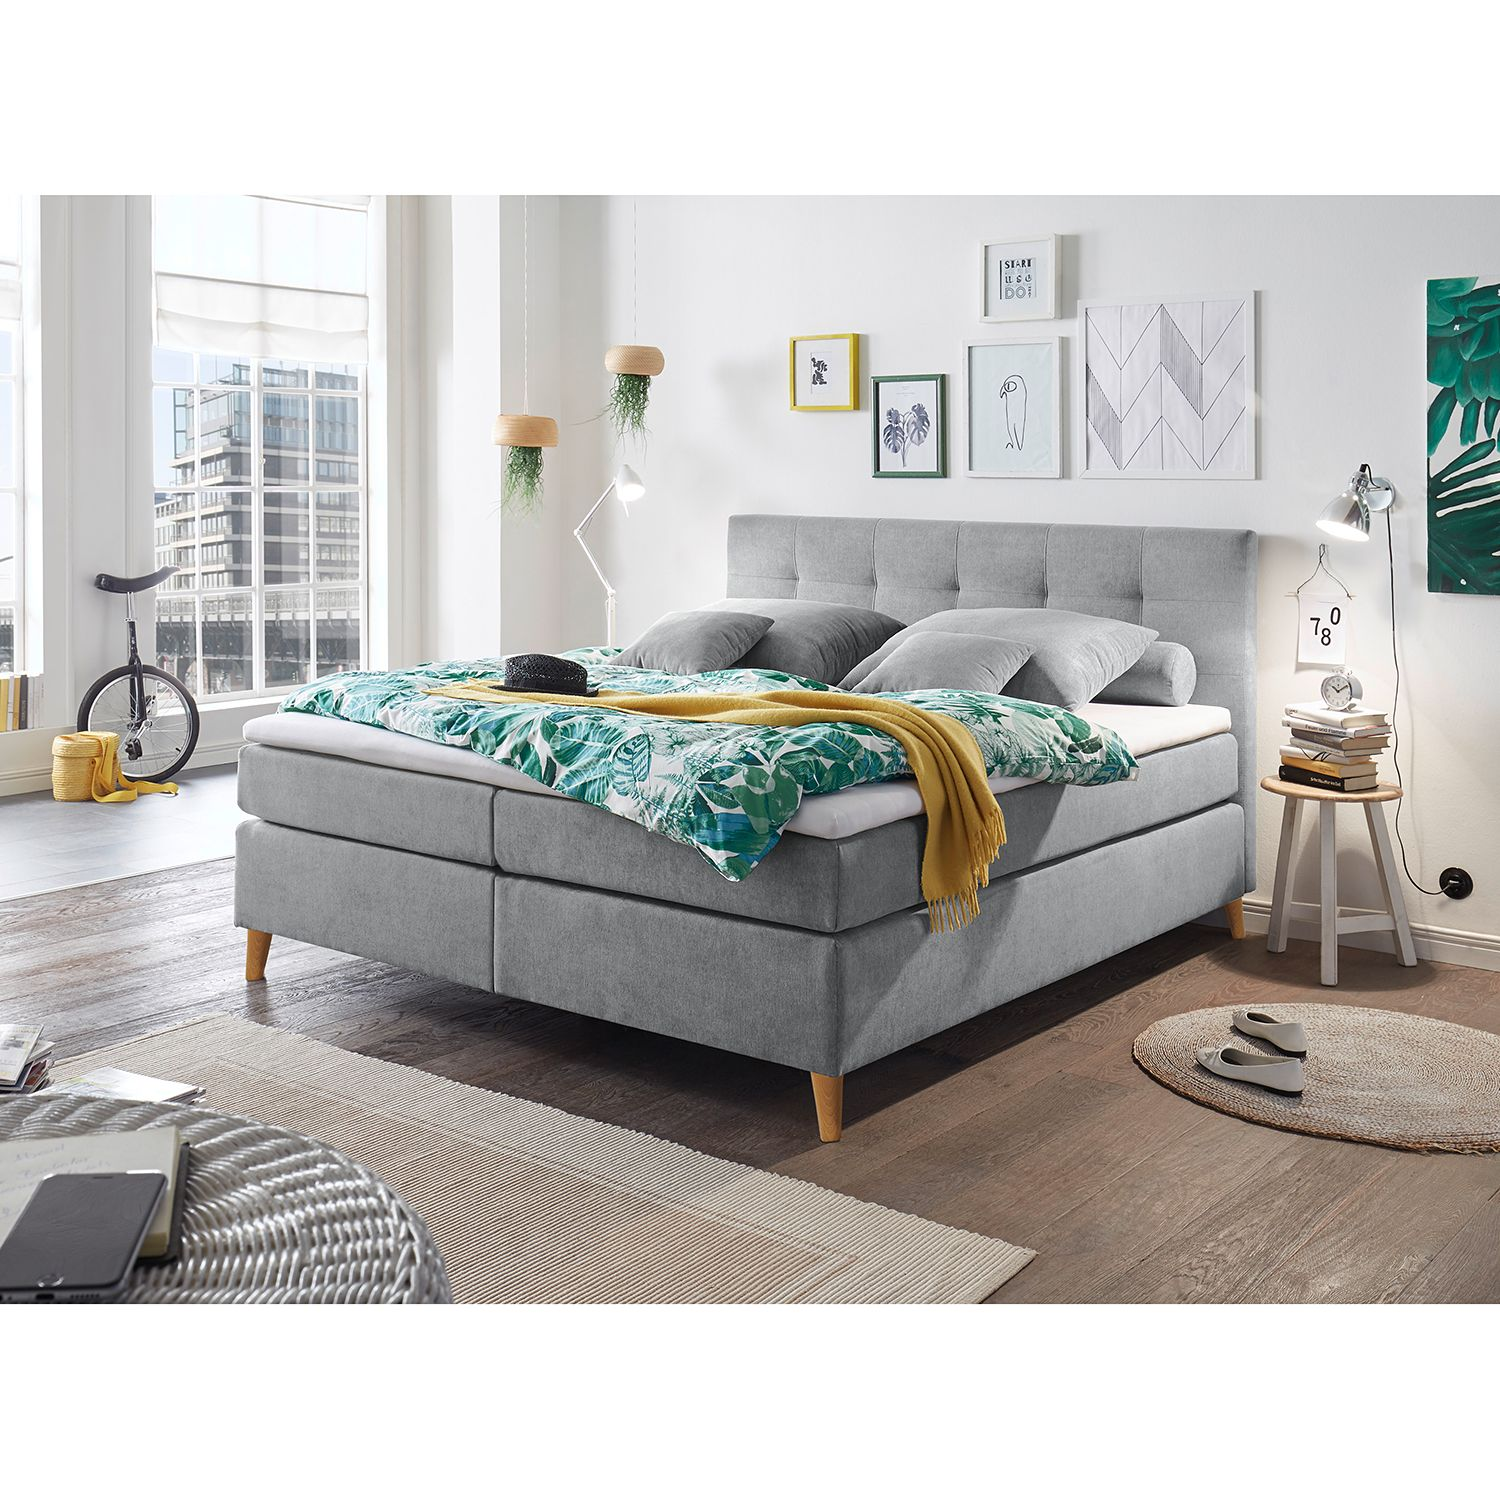 Lit Boxspring Campile